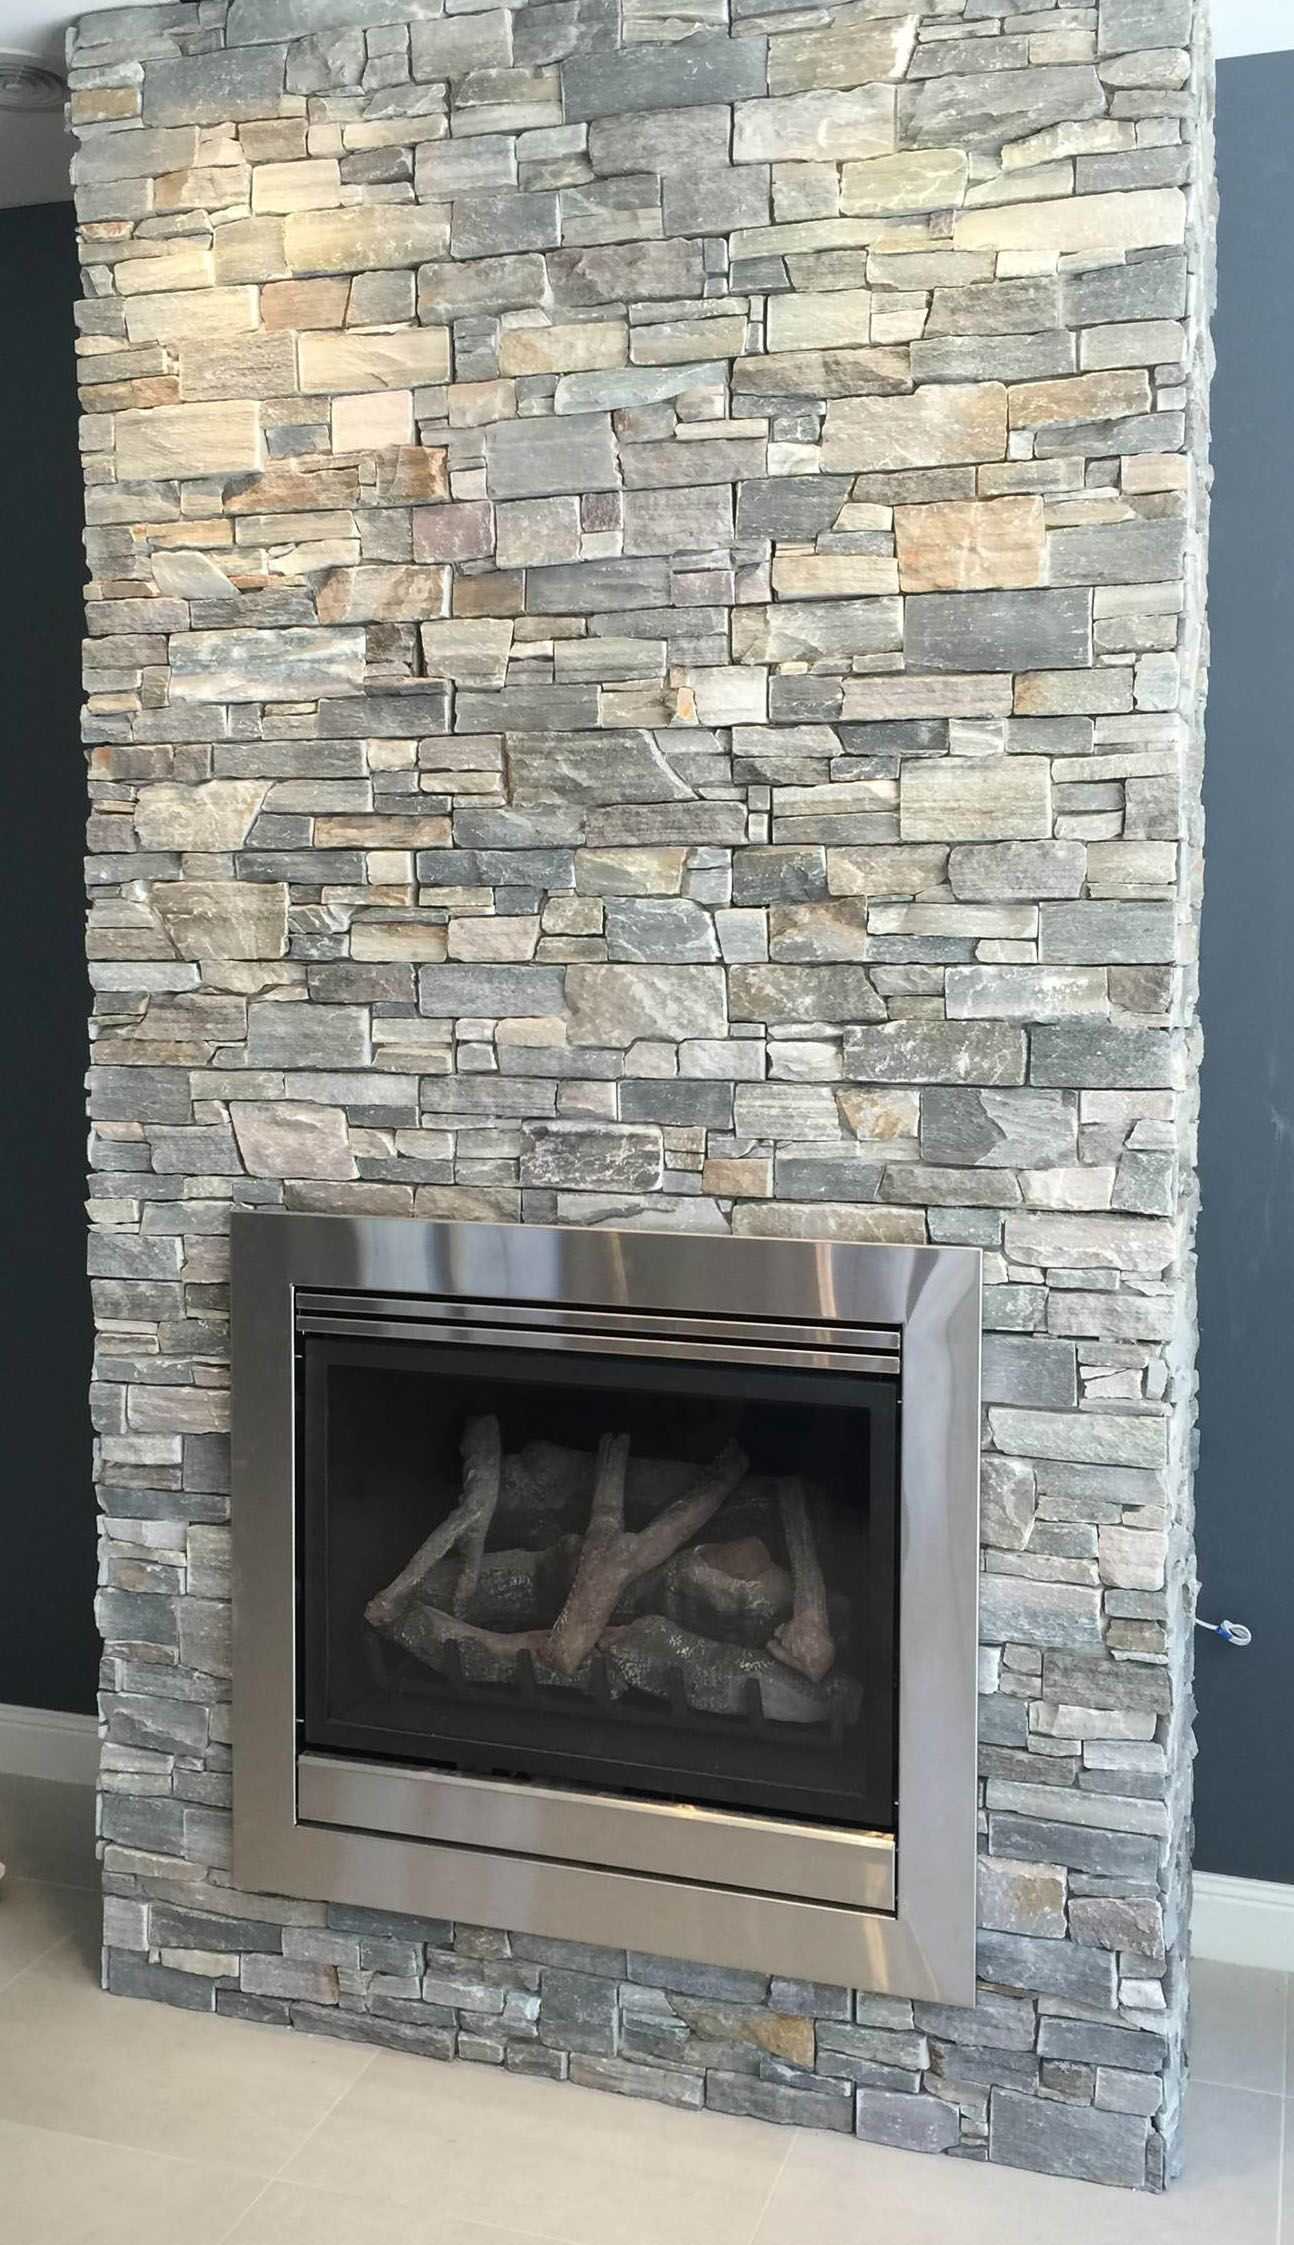 INTRODUCING OUR NEW COLOUR NORDIC IN LEDGE STONE  Ledge Stone Cladding  Pinterest  Cladding